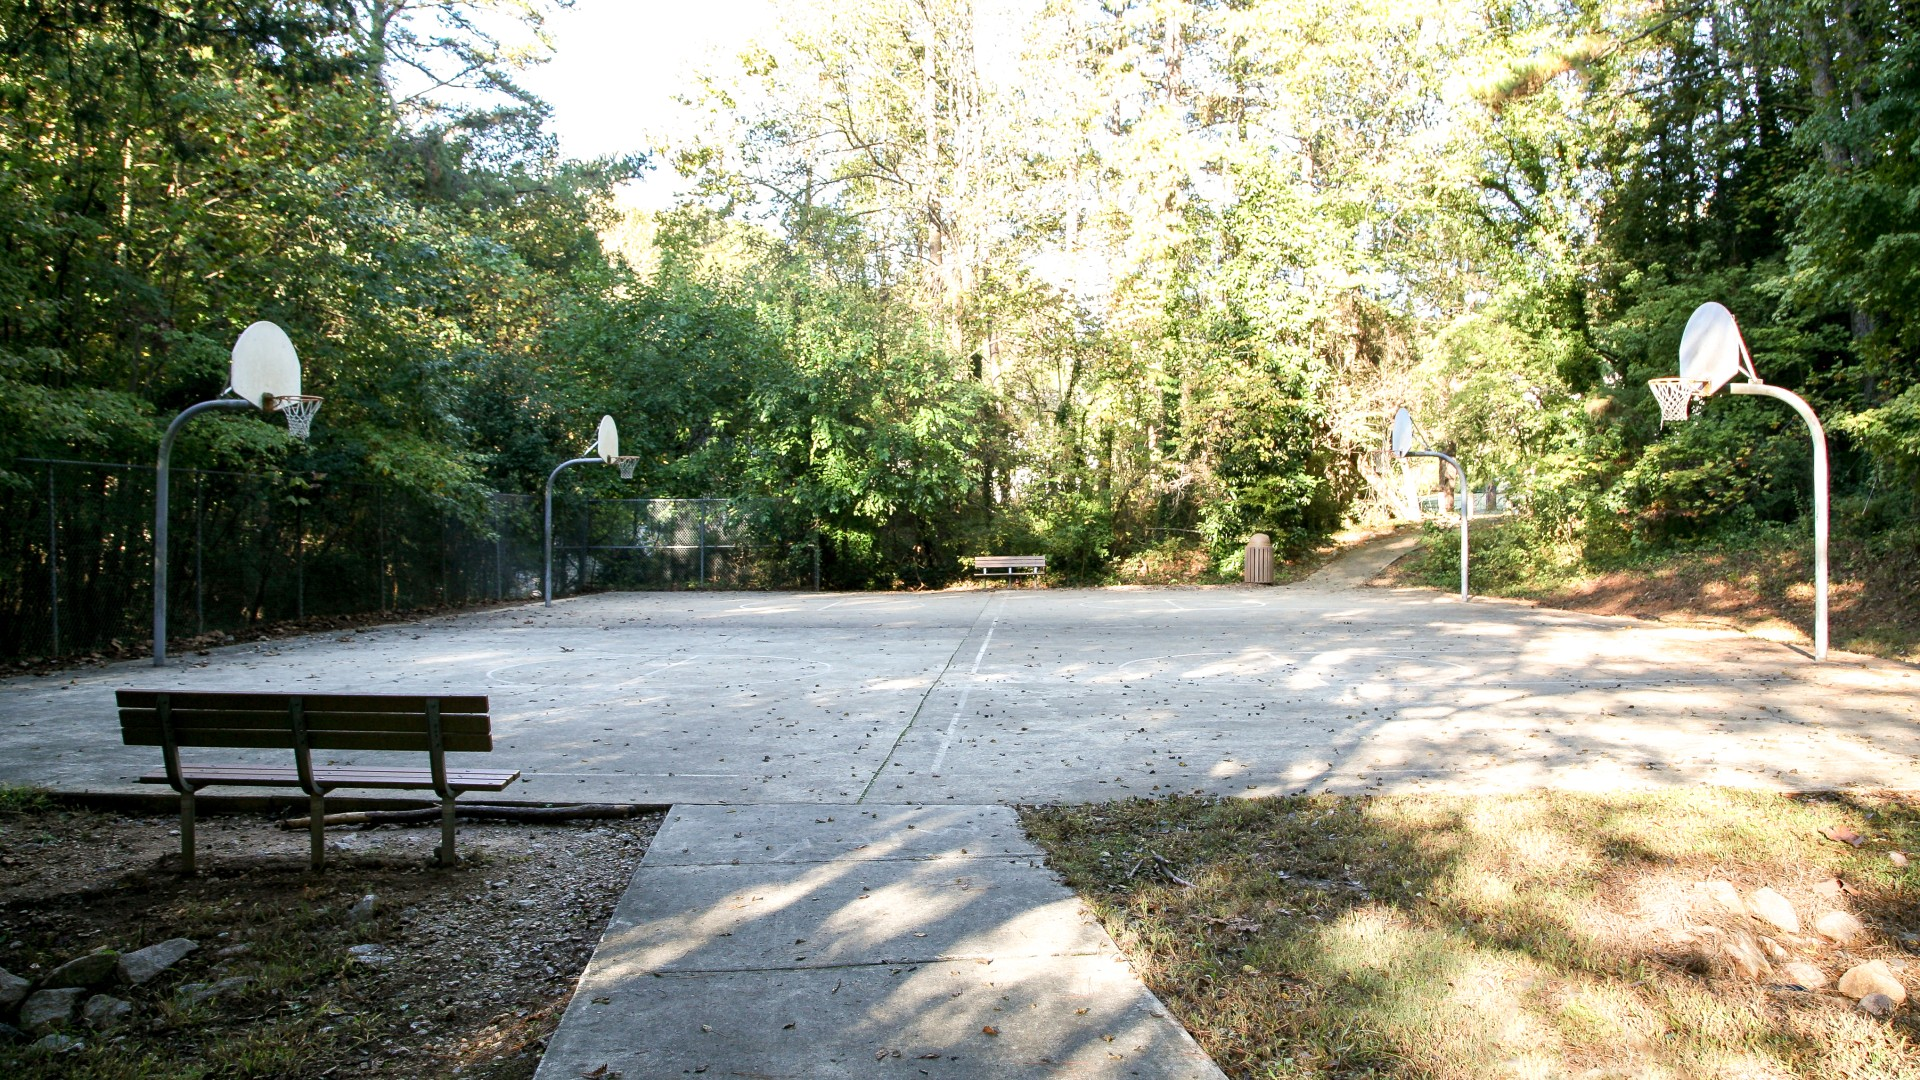 Outdoor basketball court with multiple hoops at Glen Eden Pilot Park